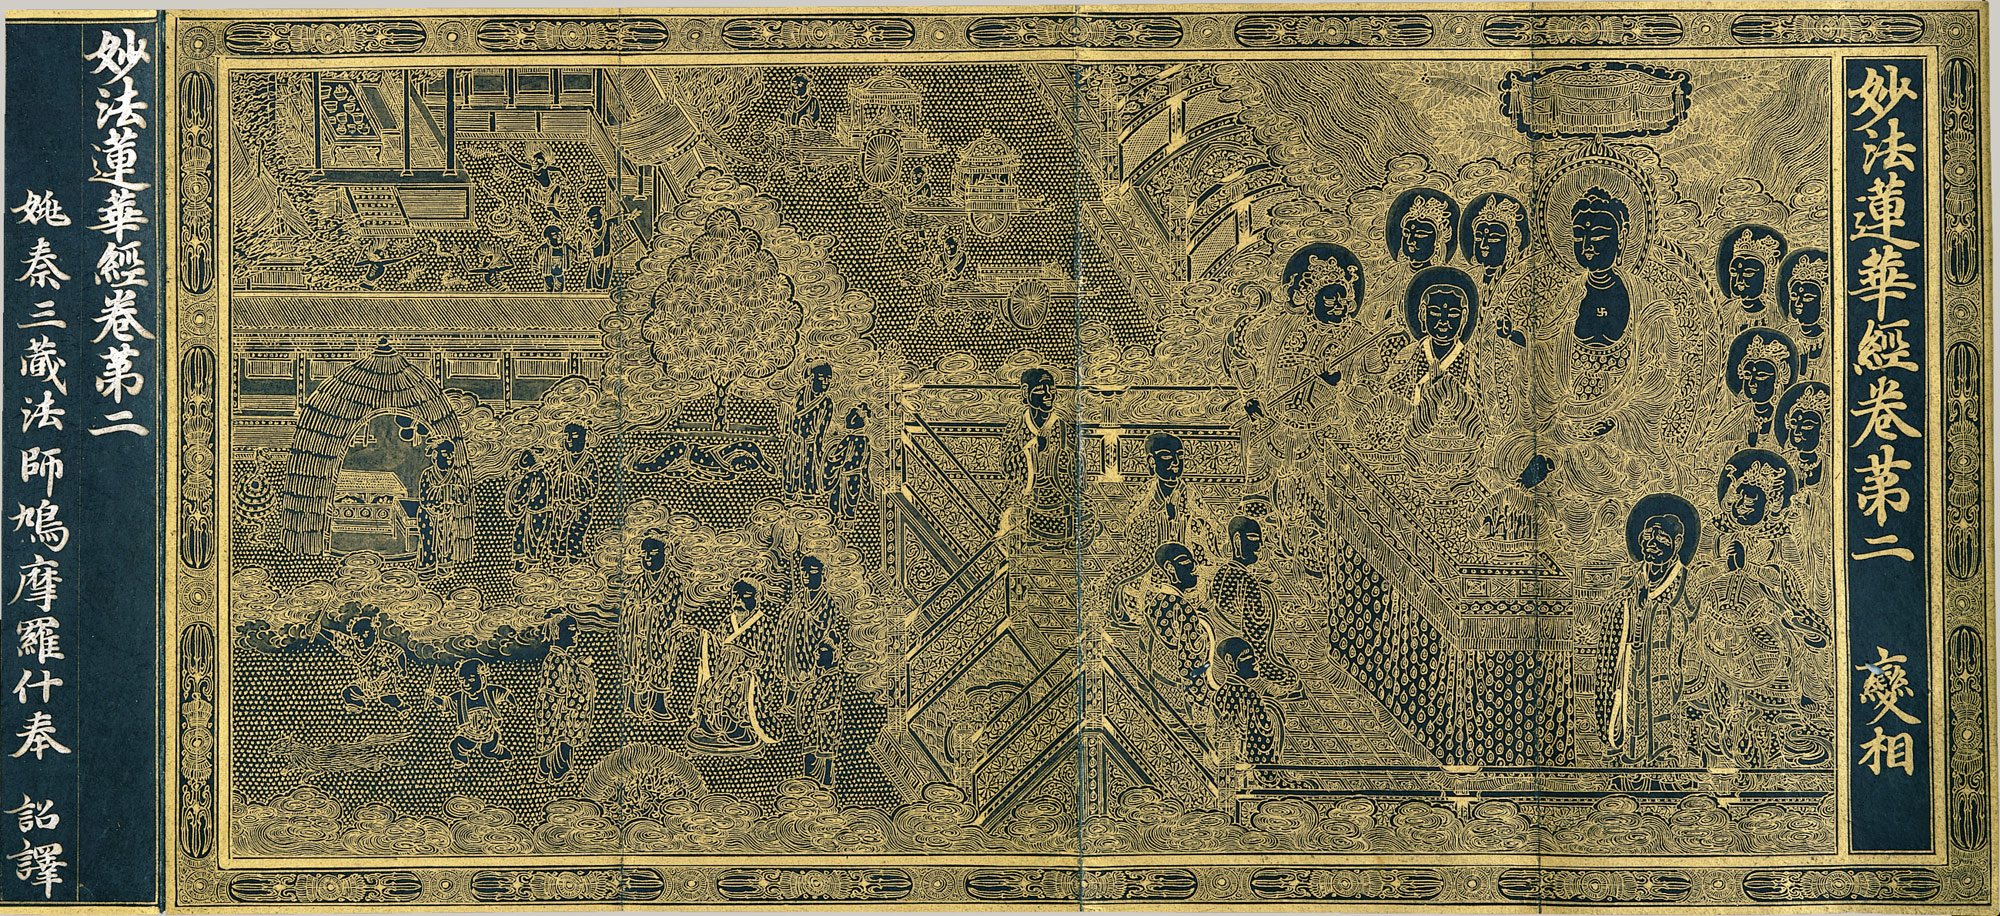 painting formats in east asian art essay heilbrunn timeline of   illustrated manuscript of the lotus sutra